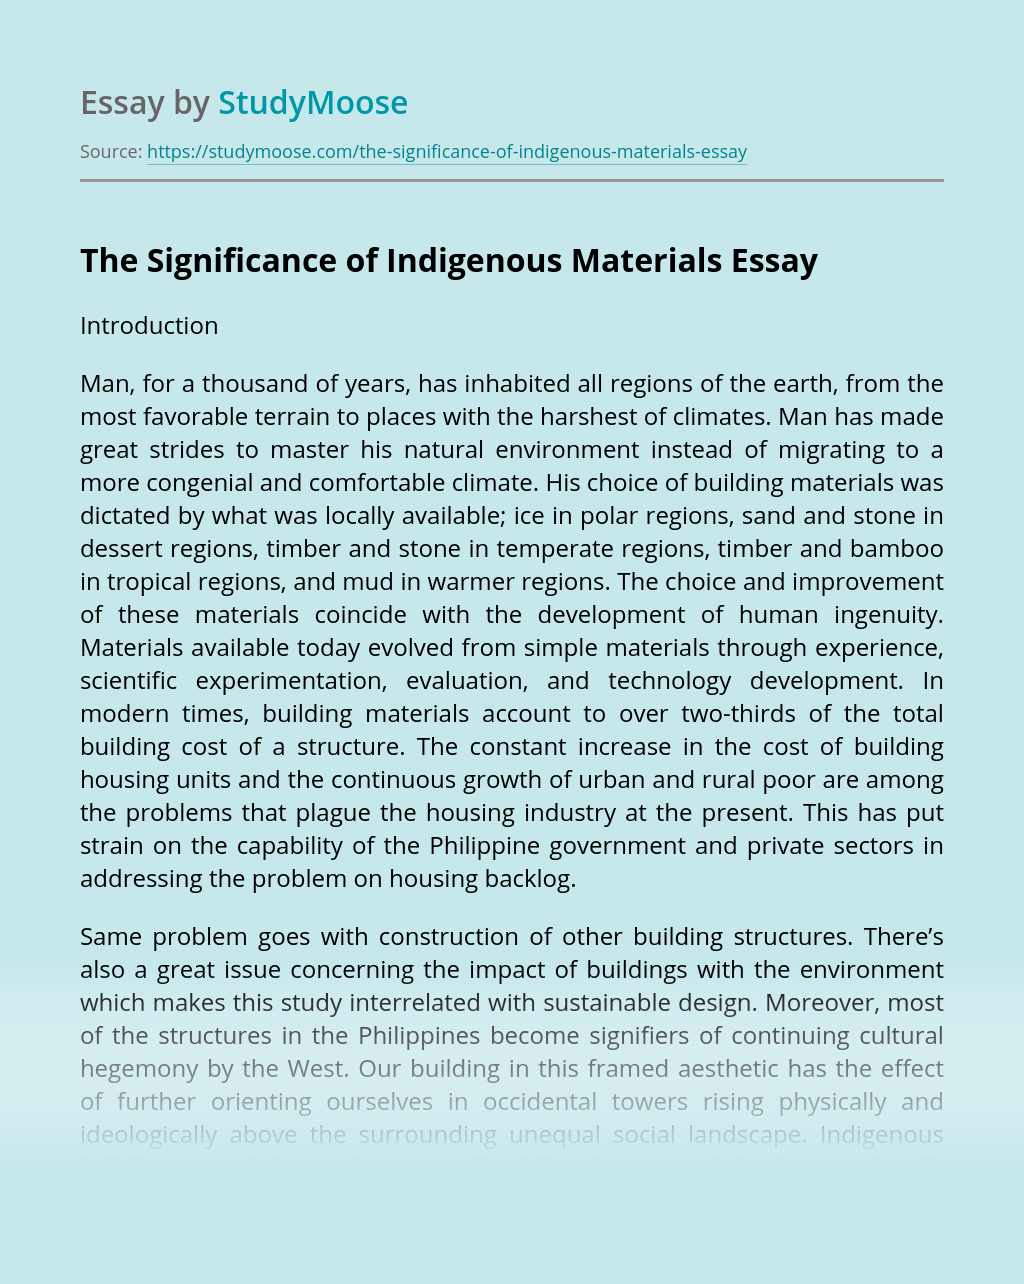 The Significance of Indigenous Materials